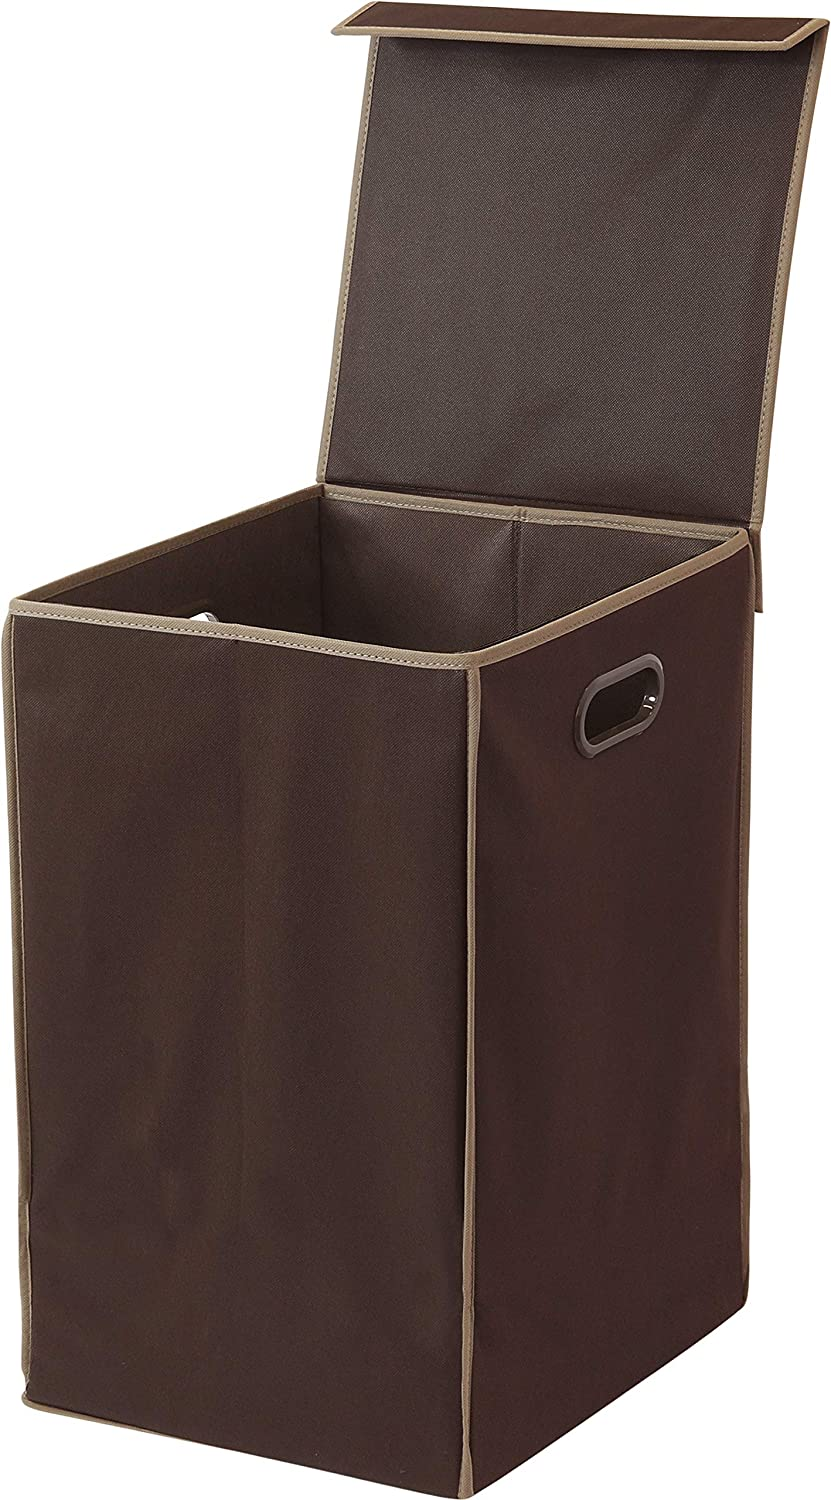 Simple Houseware Foldable Laundry Hamper Basket with Lid, Brown